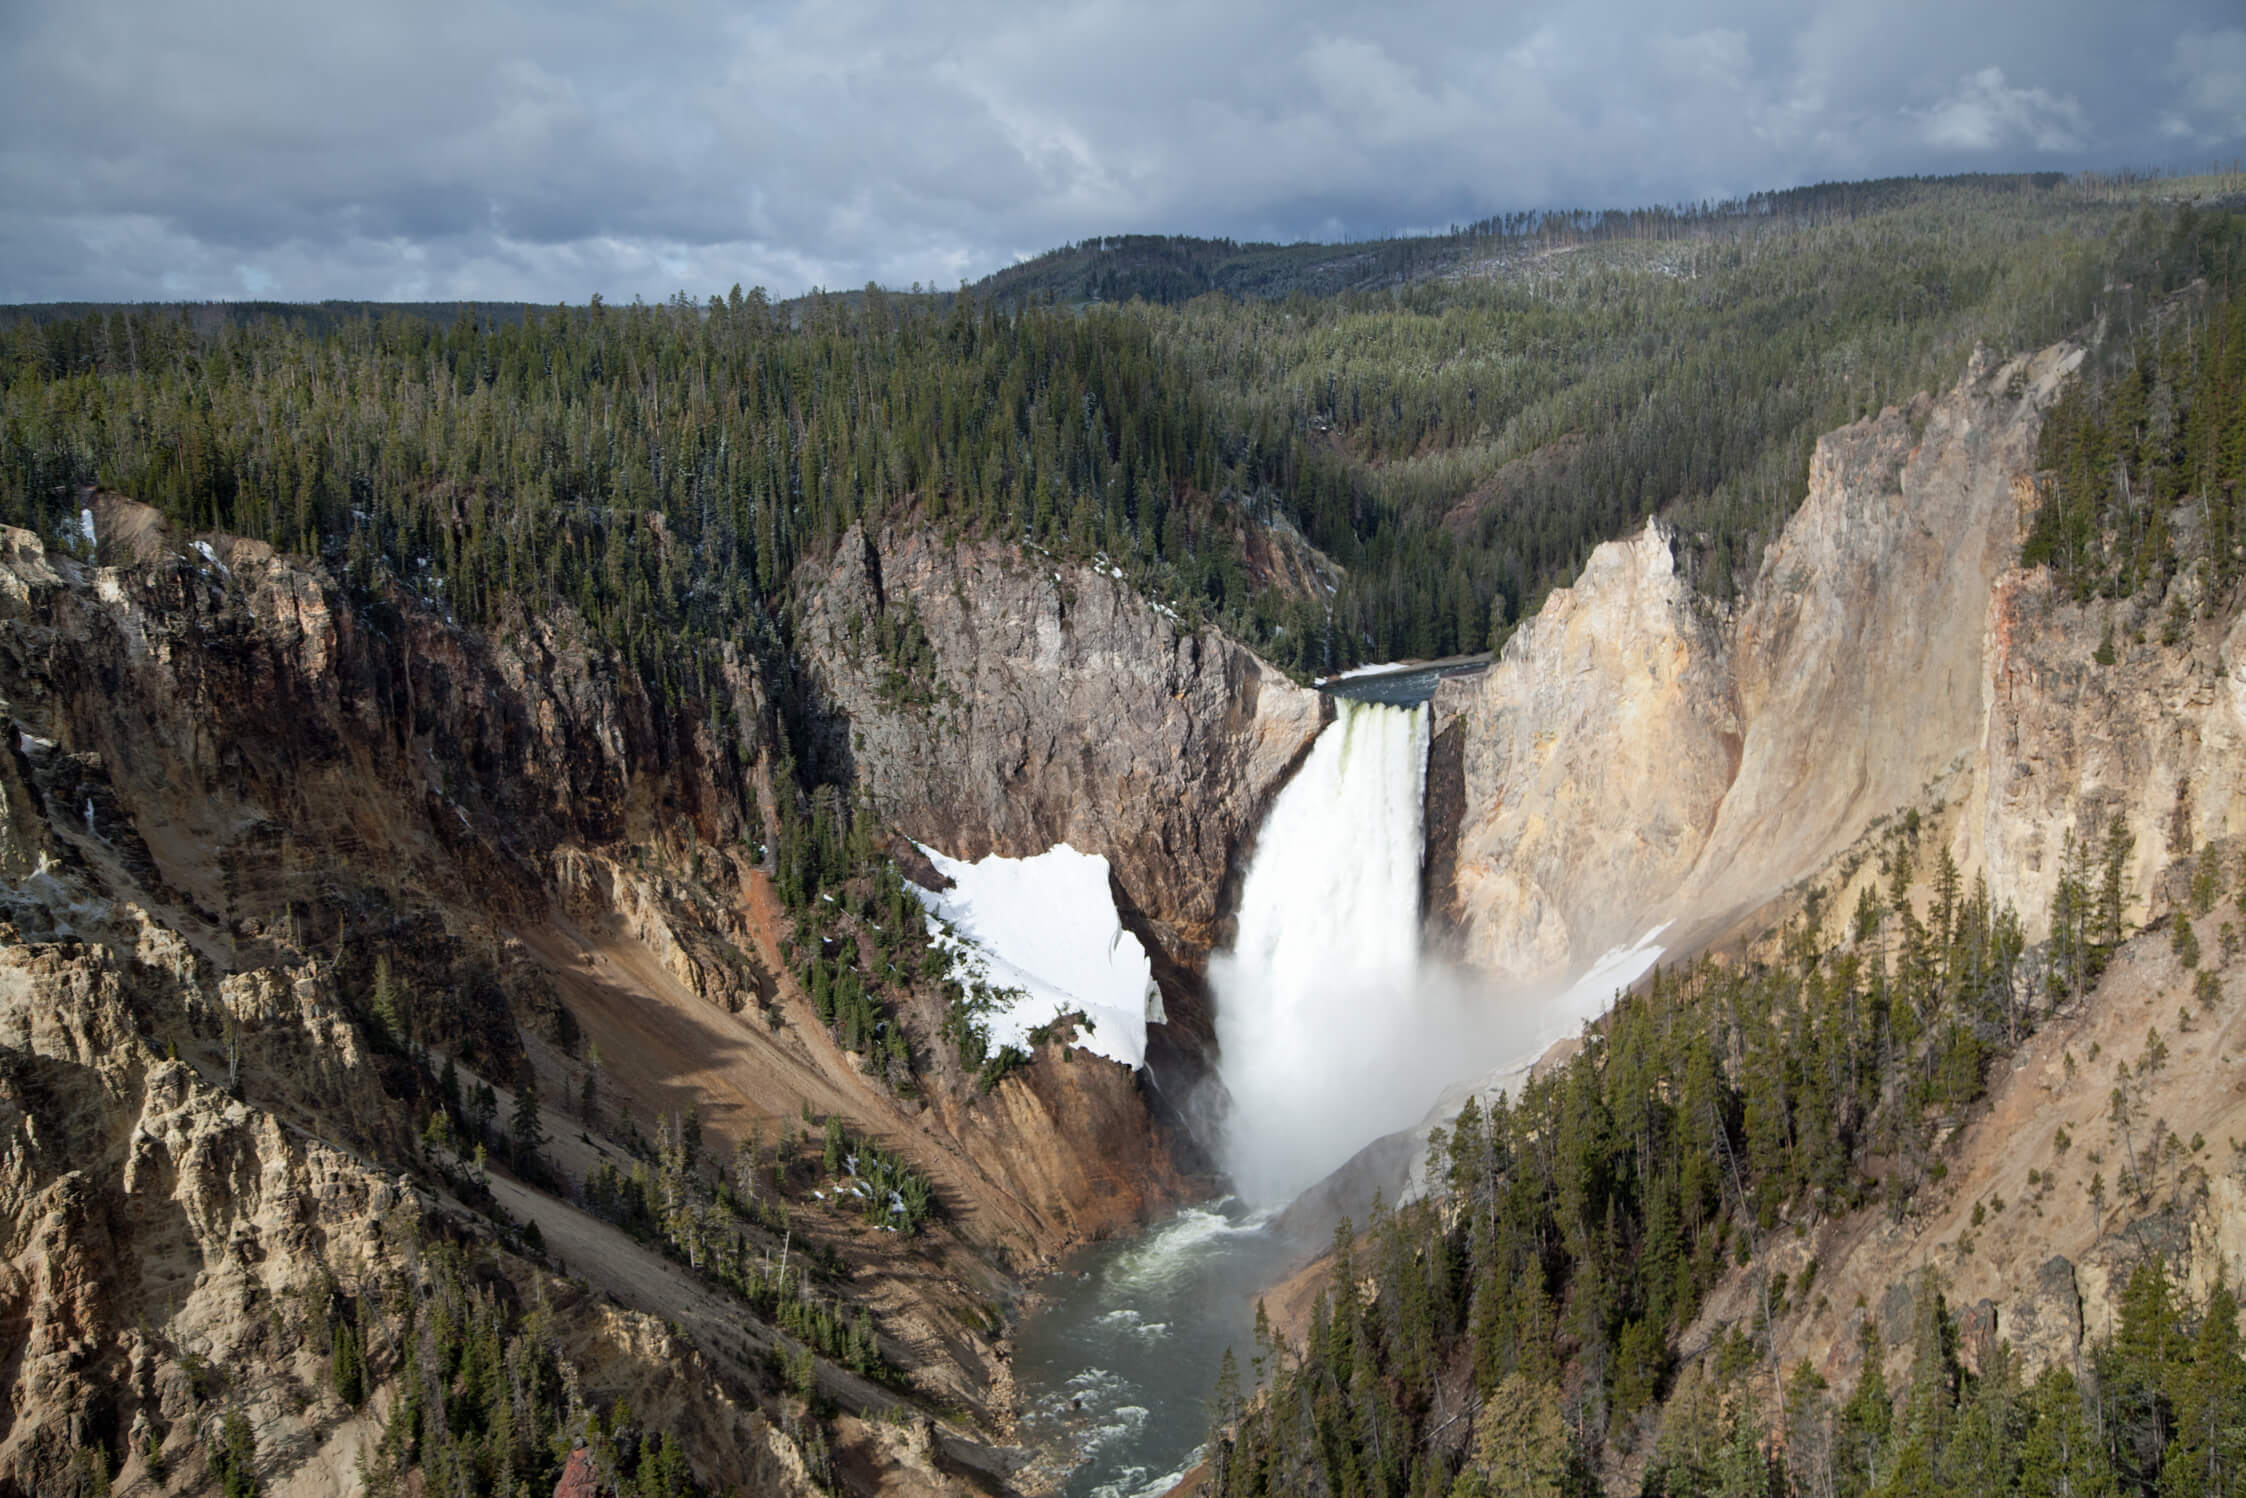 Grand Canyon of the Yellowstone and its magnificent waterfalls.